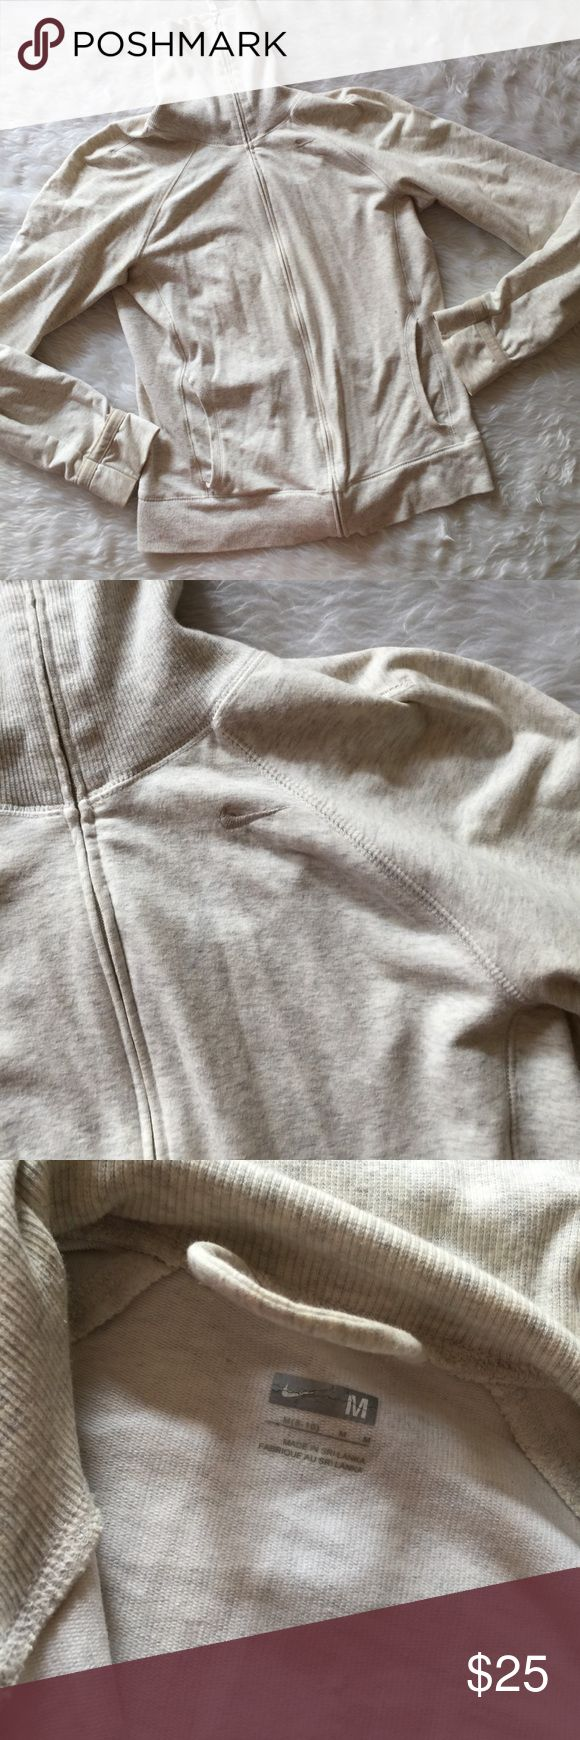 Nike Cream Zip Up Jacket Turtle Neck This jacket is in excellent condition! Size medium. Smoke and pet free home. Free of flaws like stains or holes. No trades! Offers are welcome! 😊 Nike Tops Sweatshirts & Hoodies